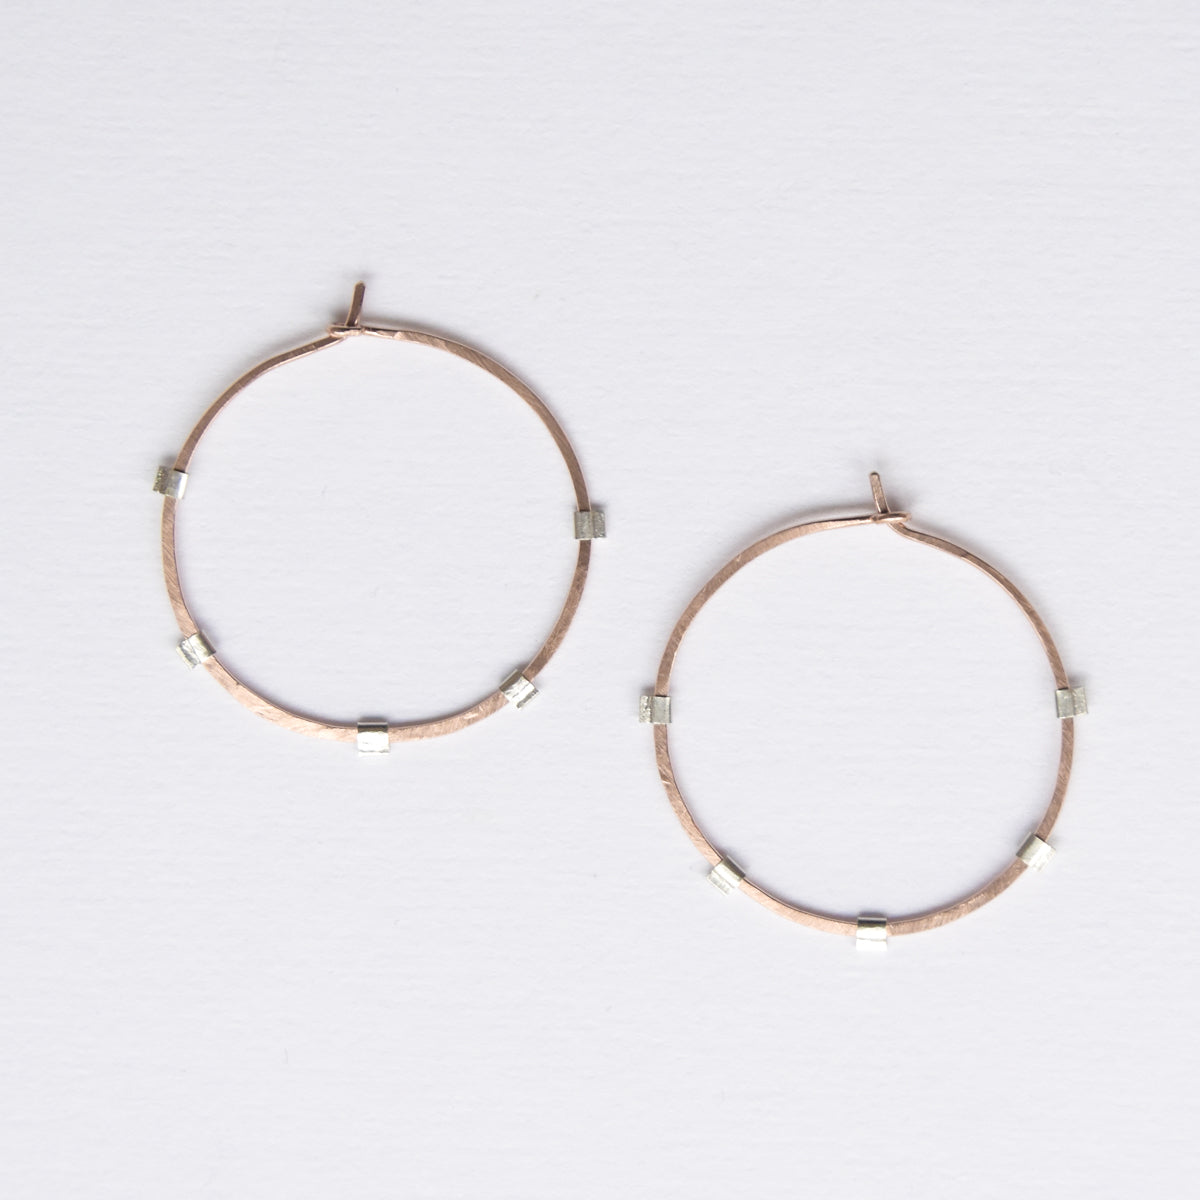 Minimalist handmade jewelry, pink gold mixed metal hoop earrings